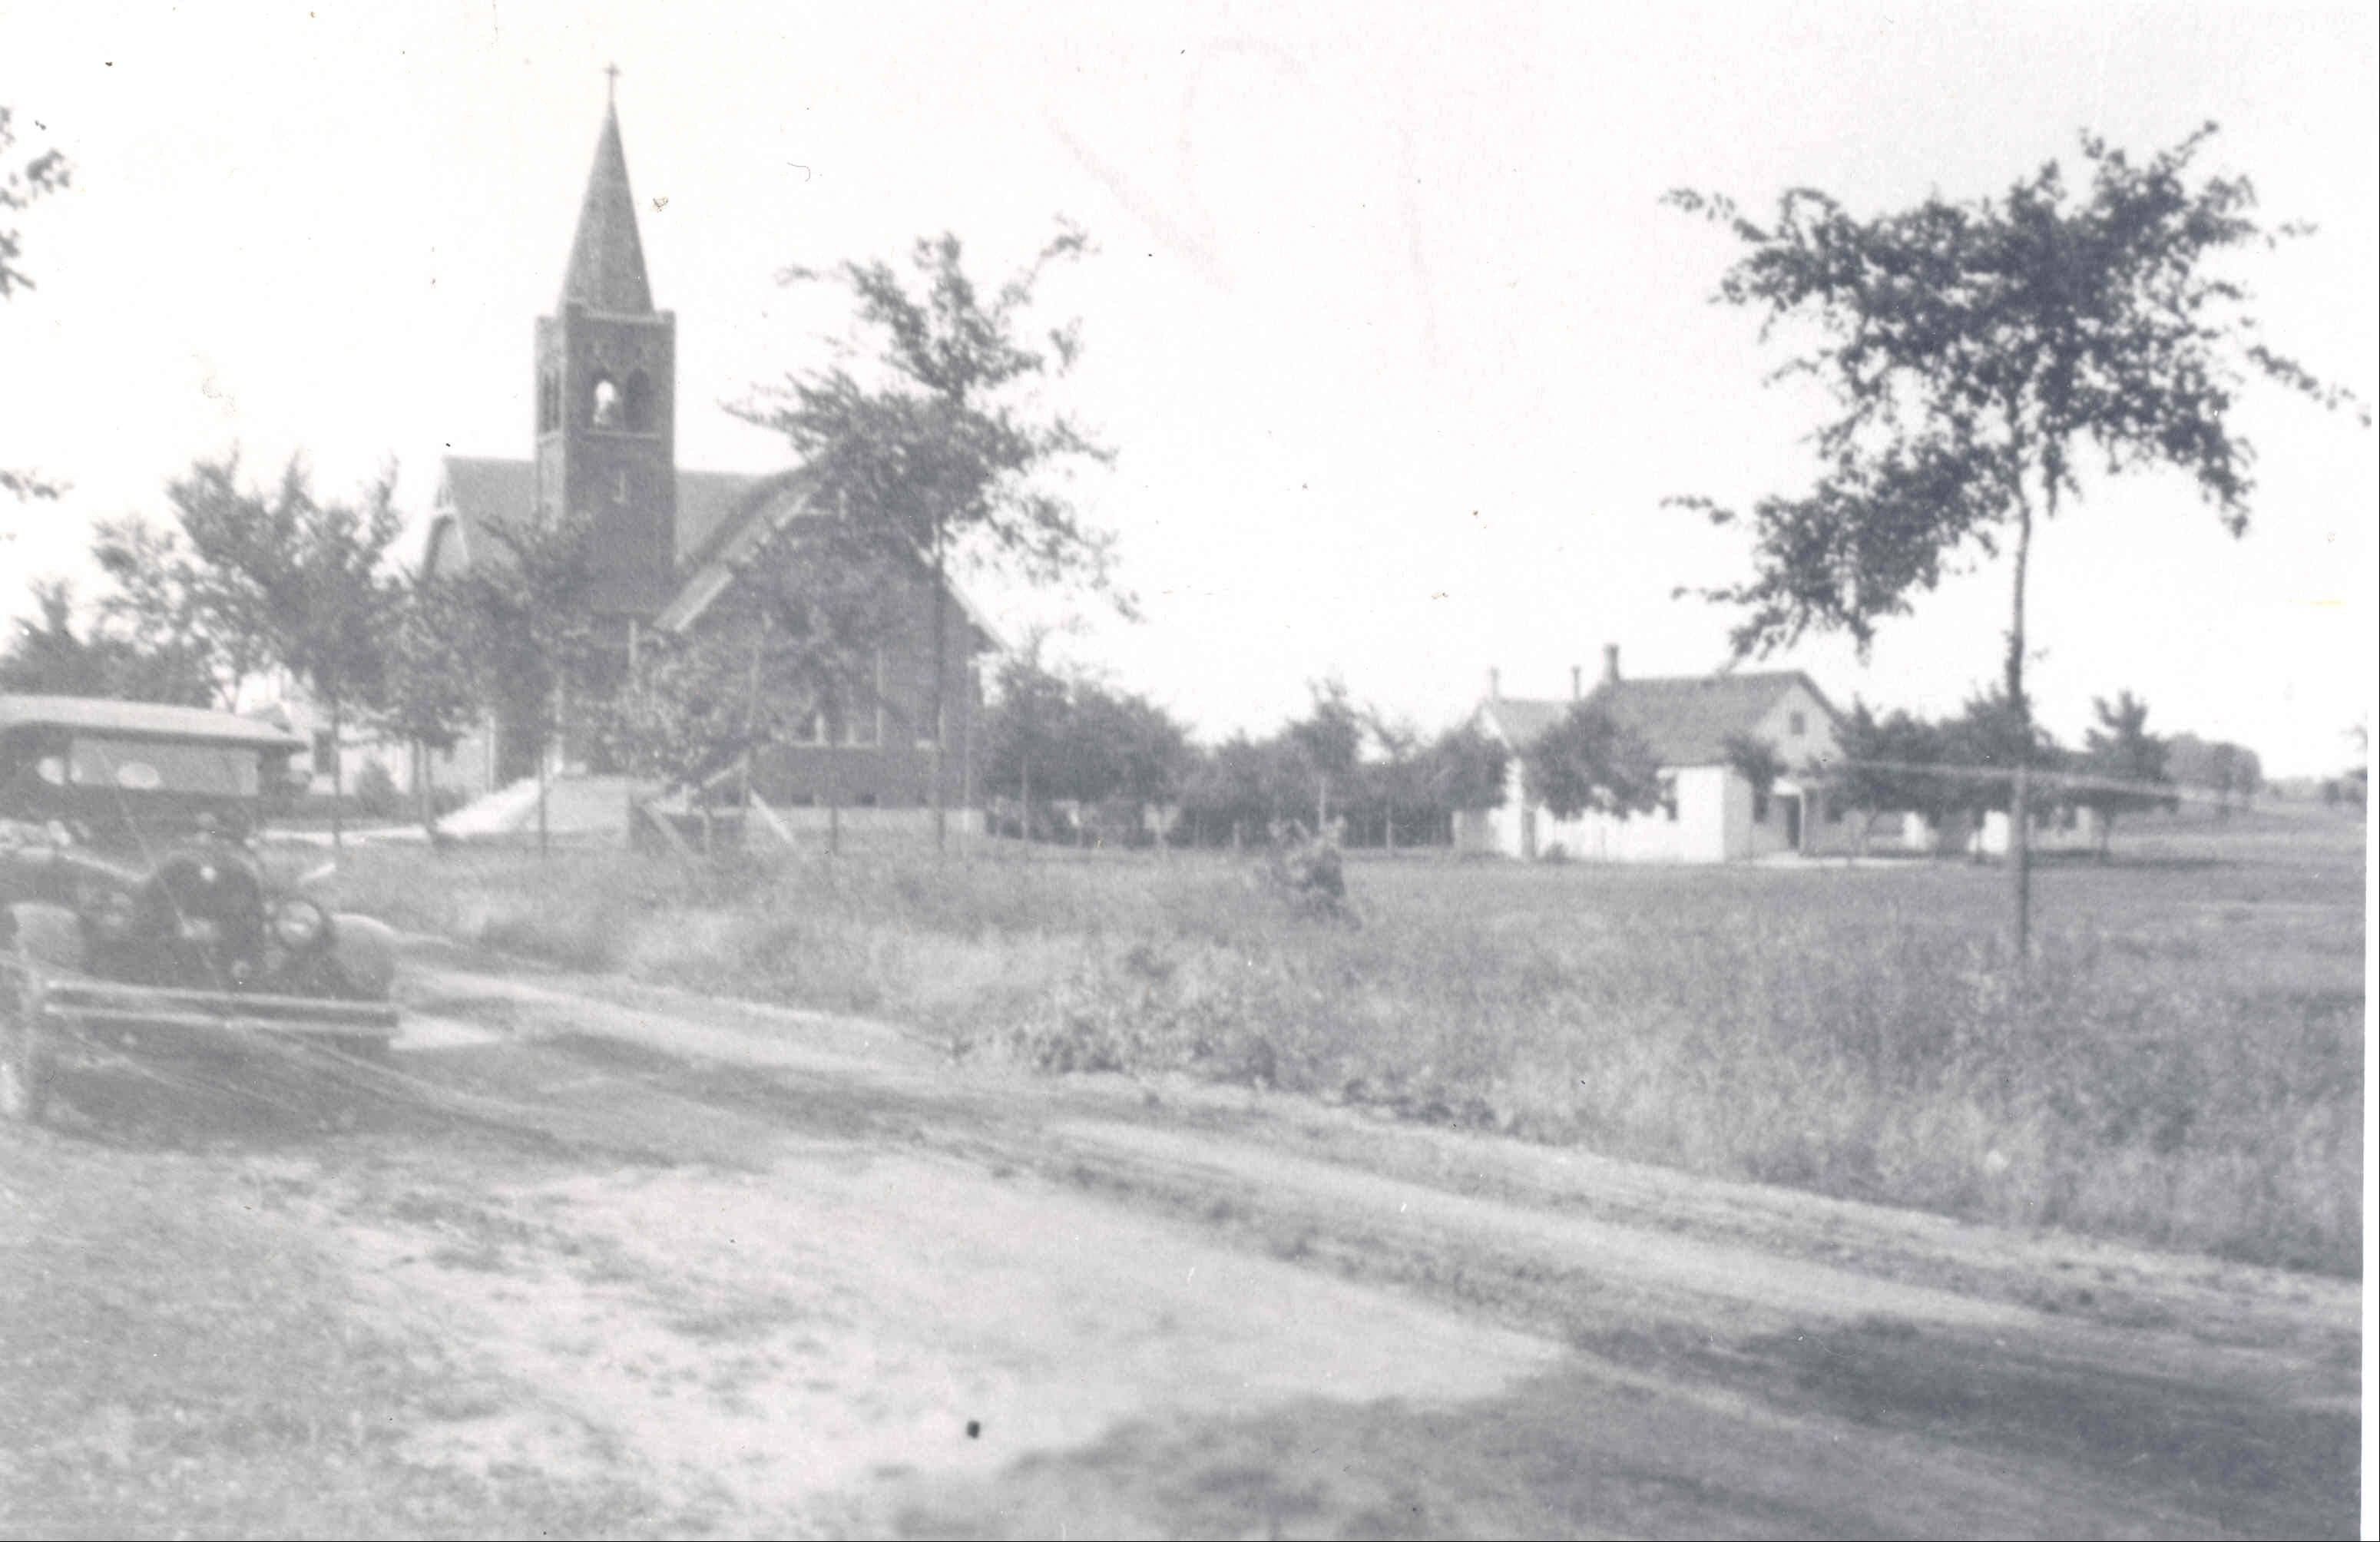 This is a view of St. Paul Lutheran Church in 1925, when it was still surrounded by farmland.